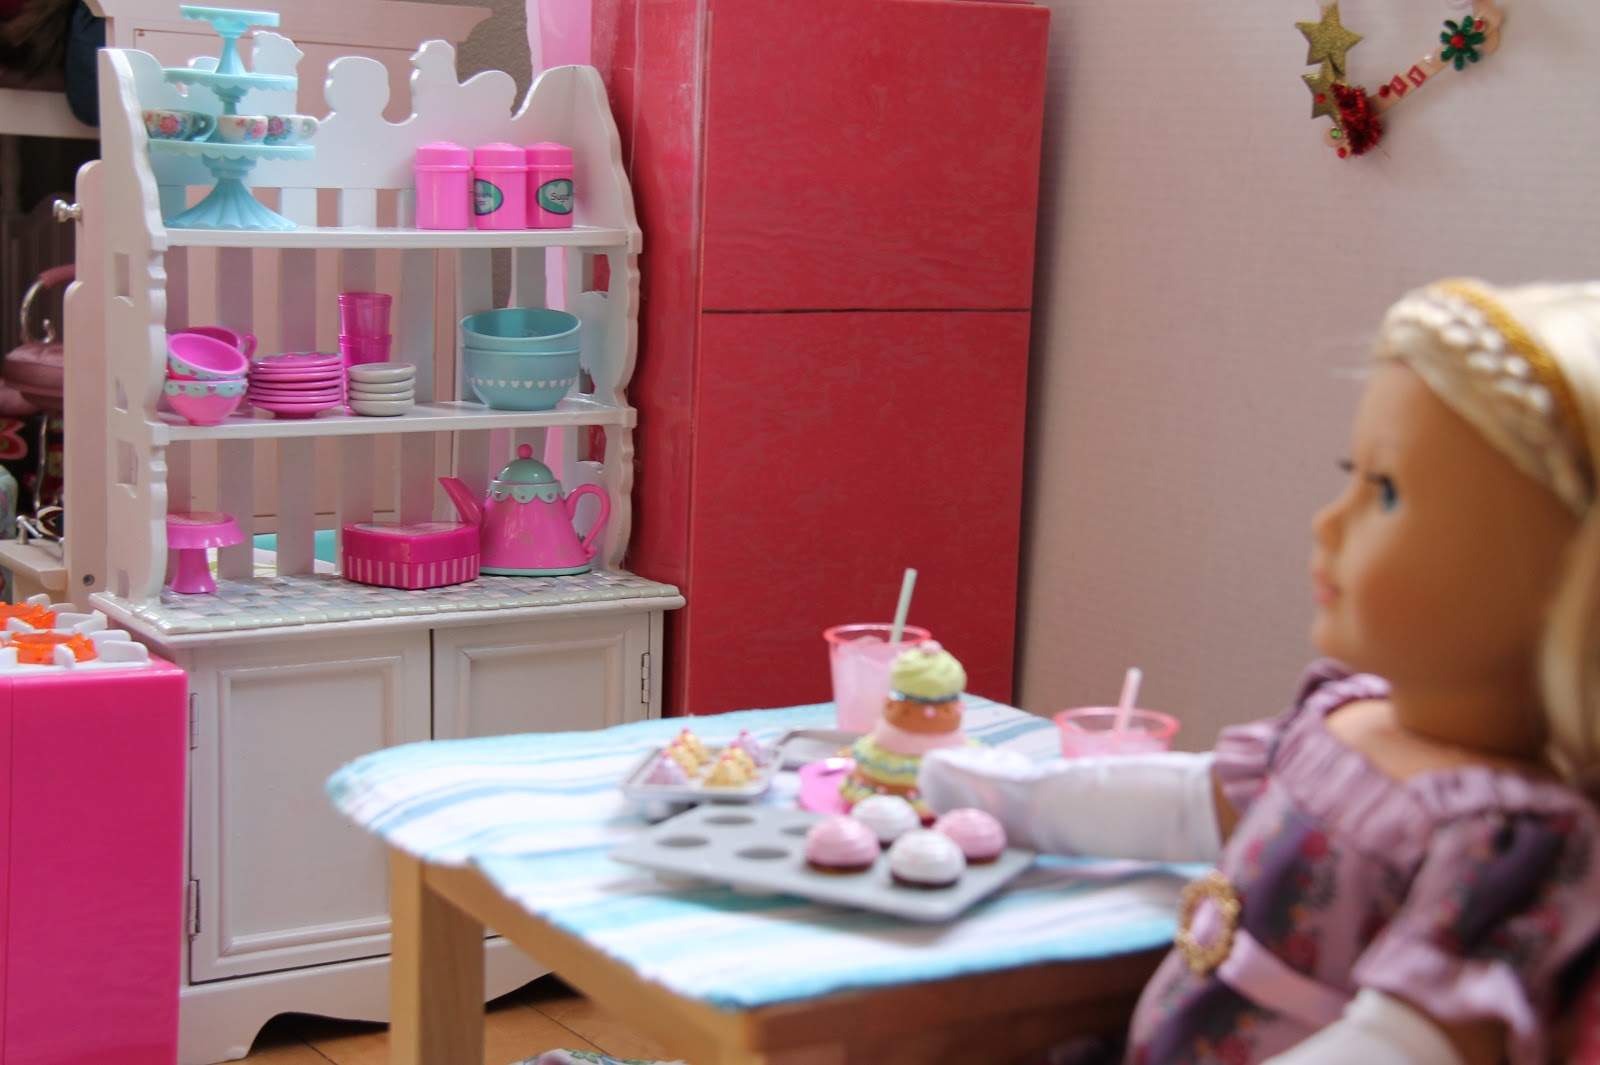 American Girl Doll Play: Thrift Store Finds - Kitchen Cabinet